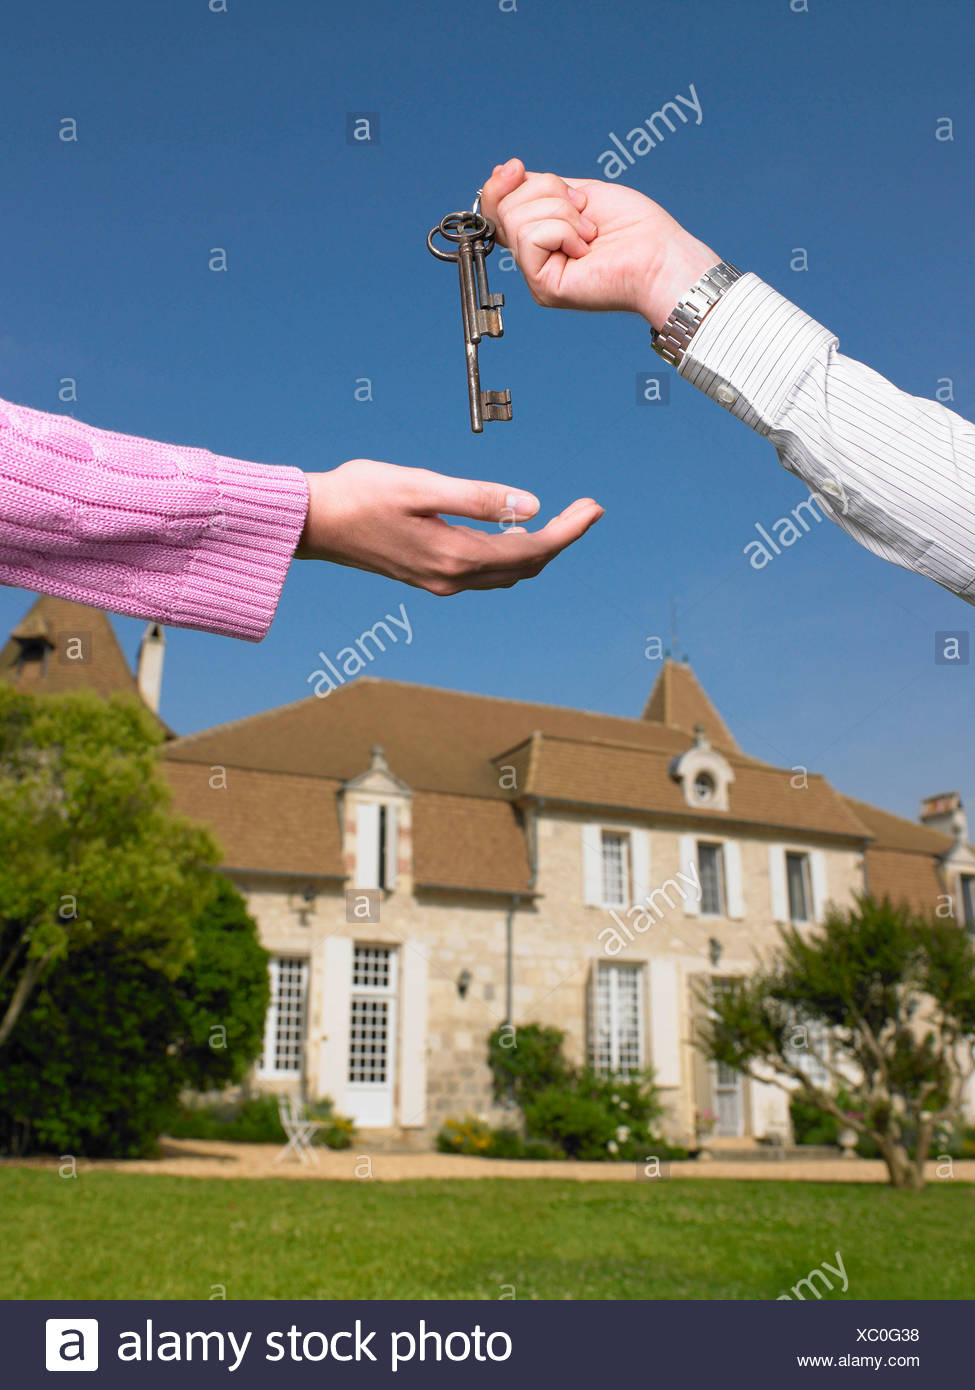 Woman receiving keys to country home - Stock Image